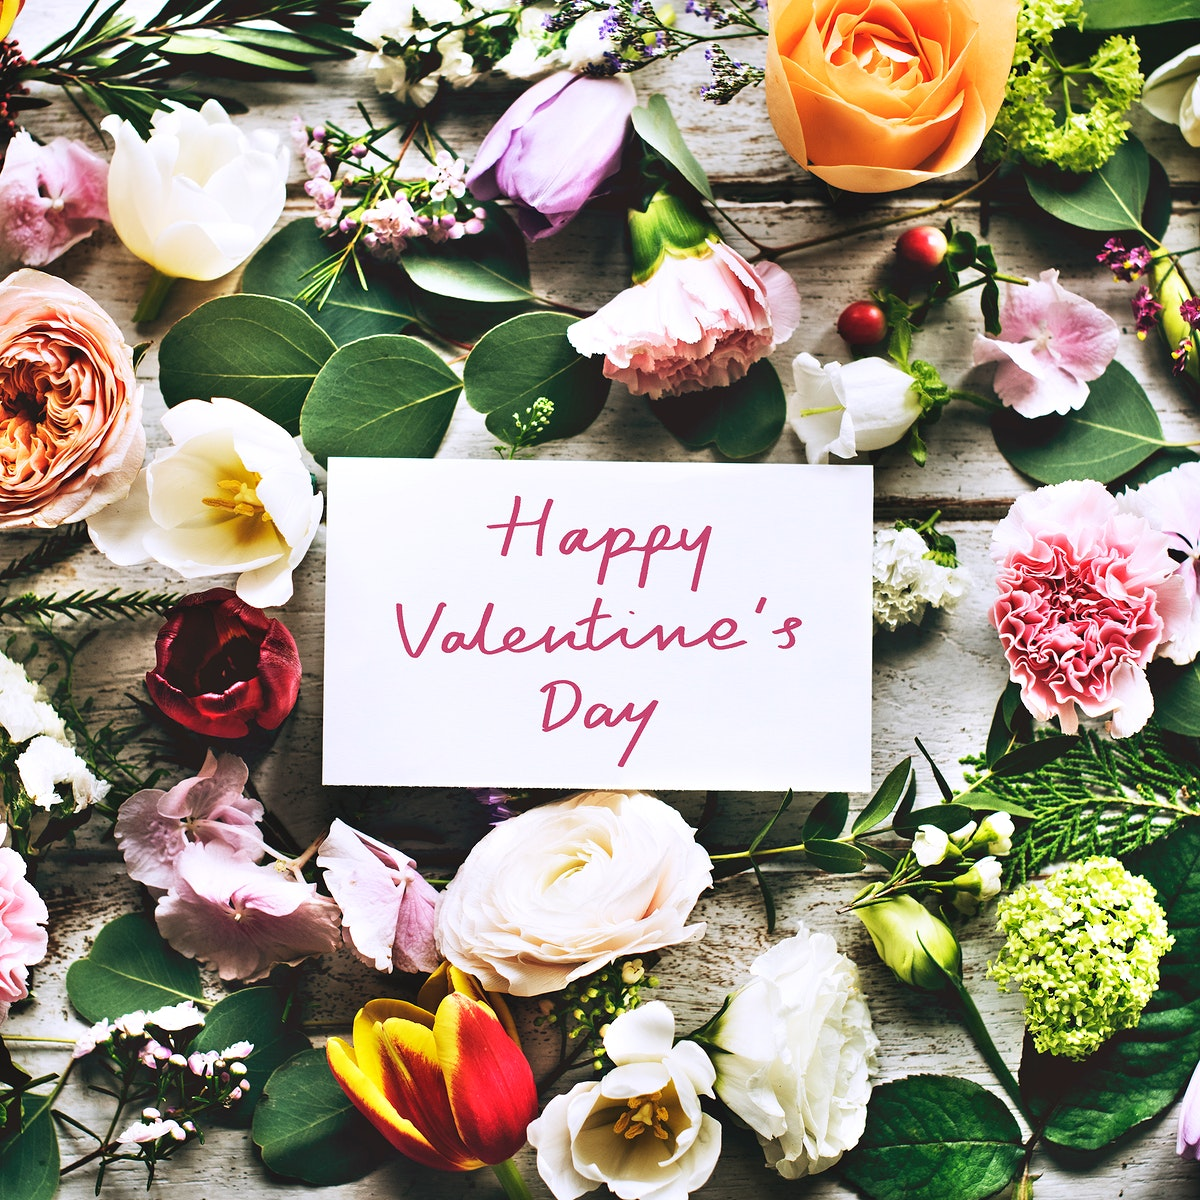 Happy Valentine's day card and flowers